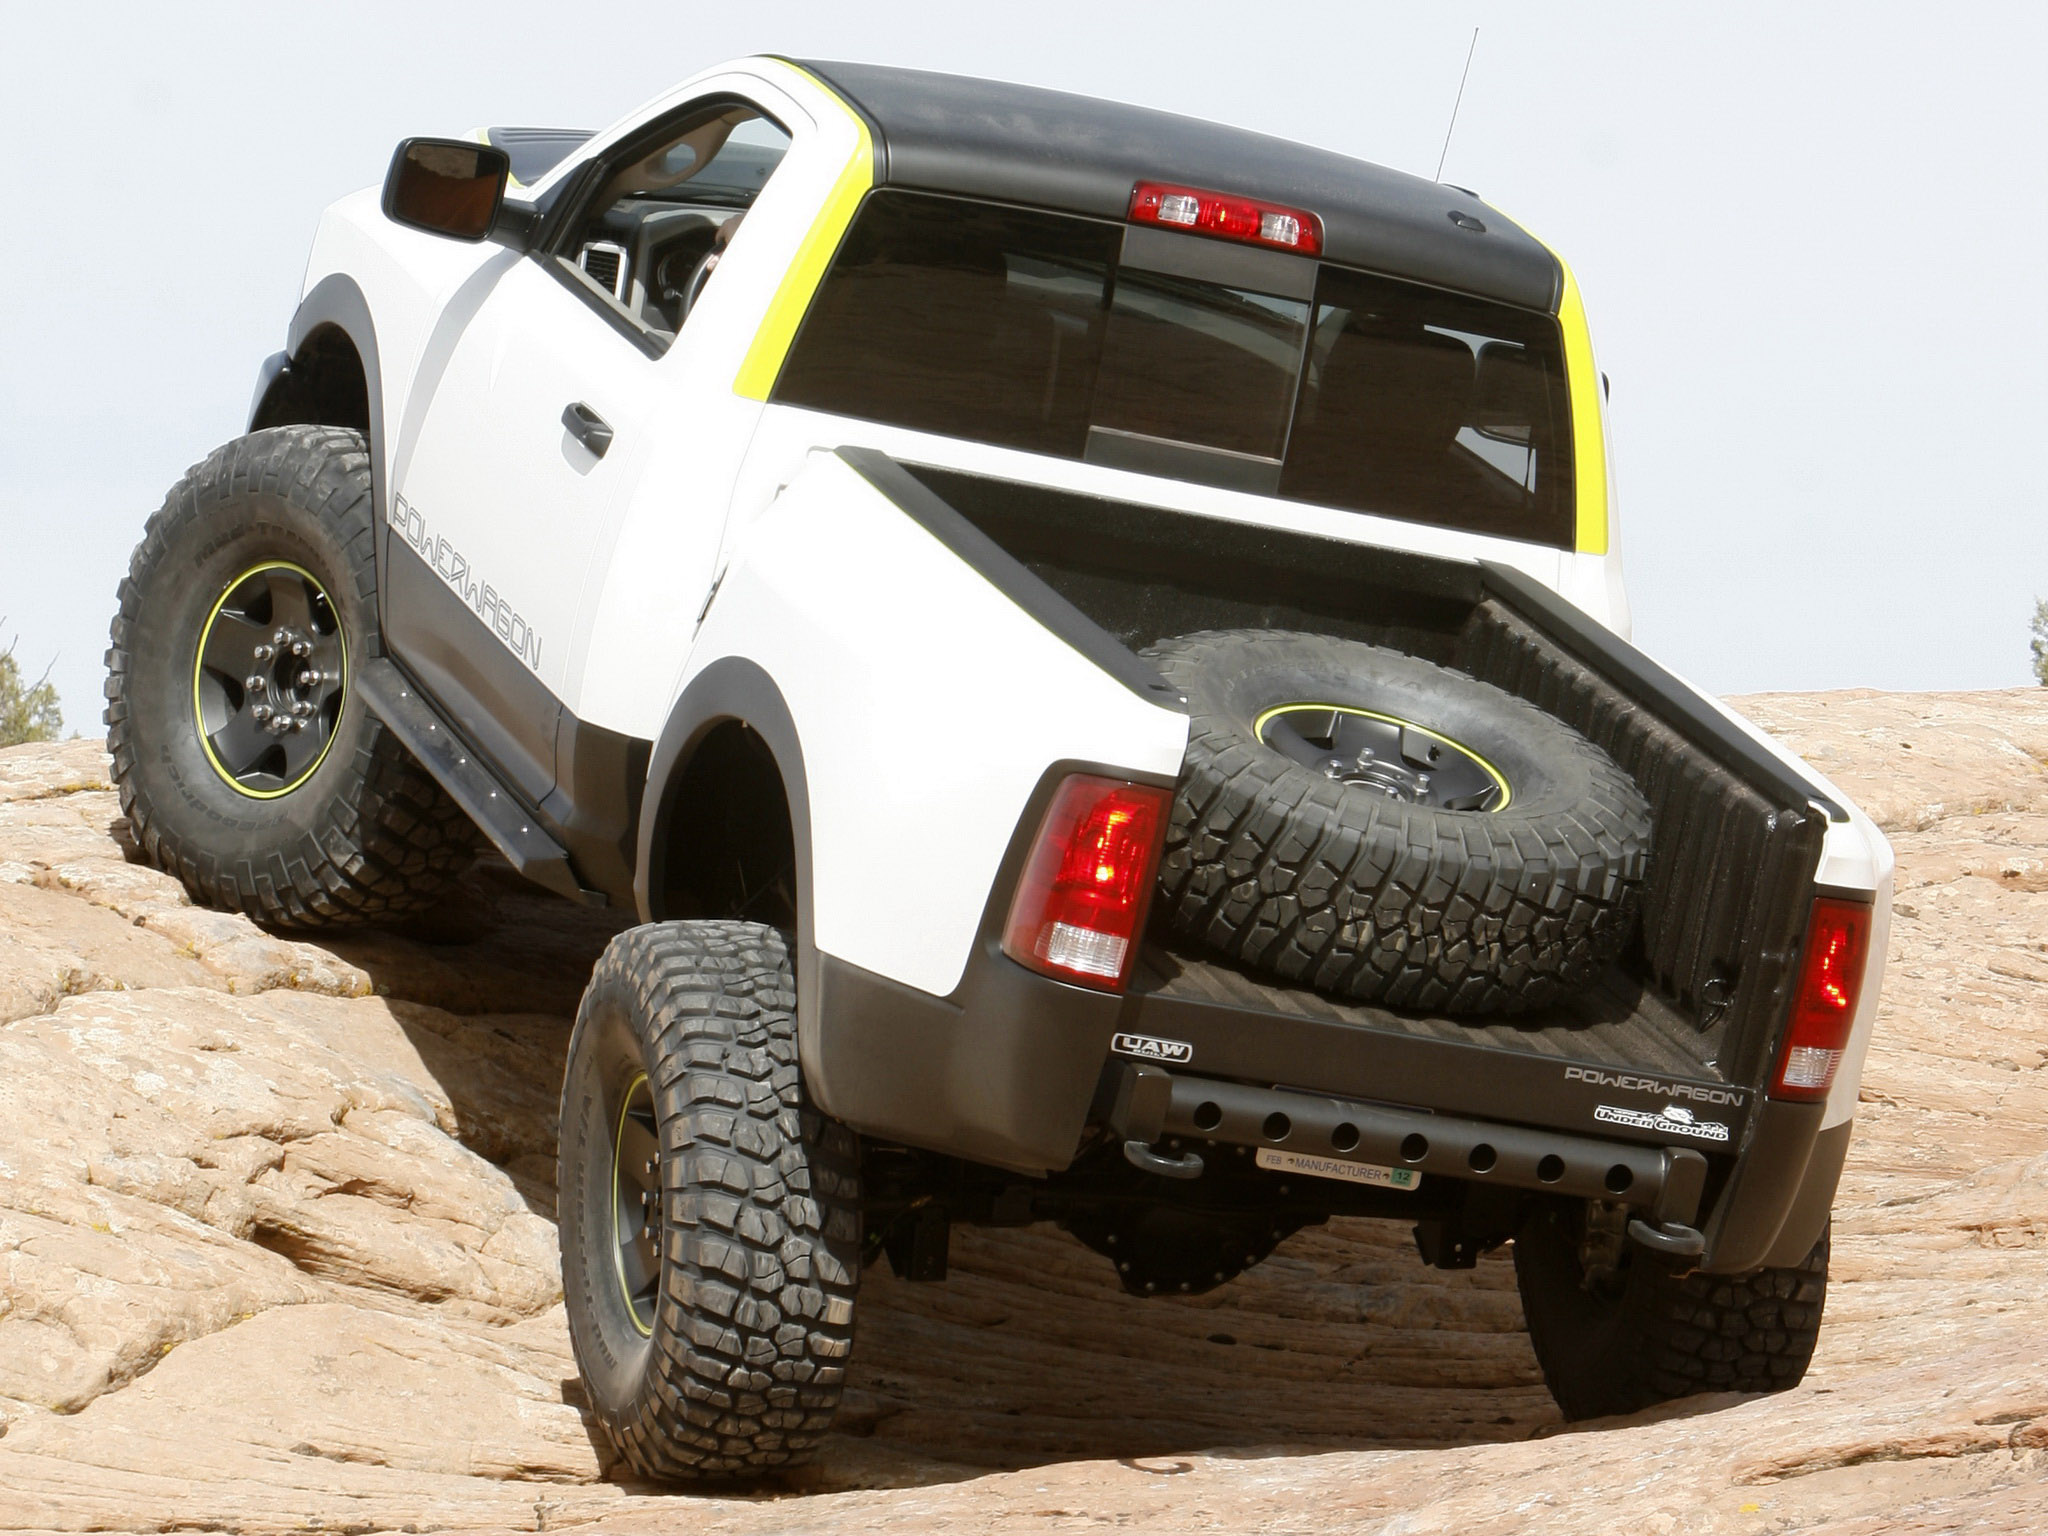 2018 Dodge Power Wagon Concept photo - 5